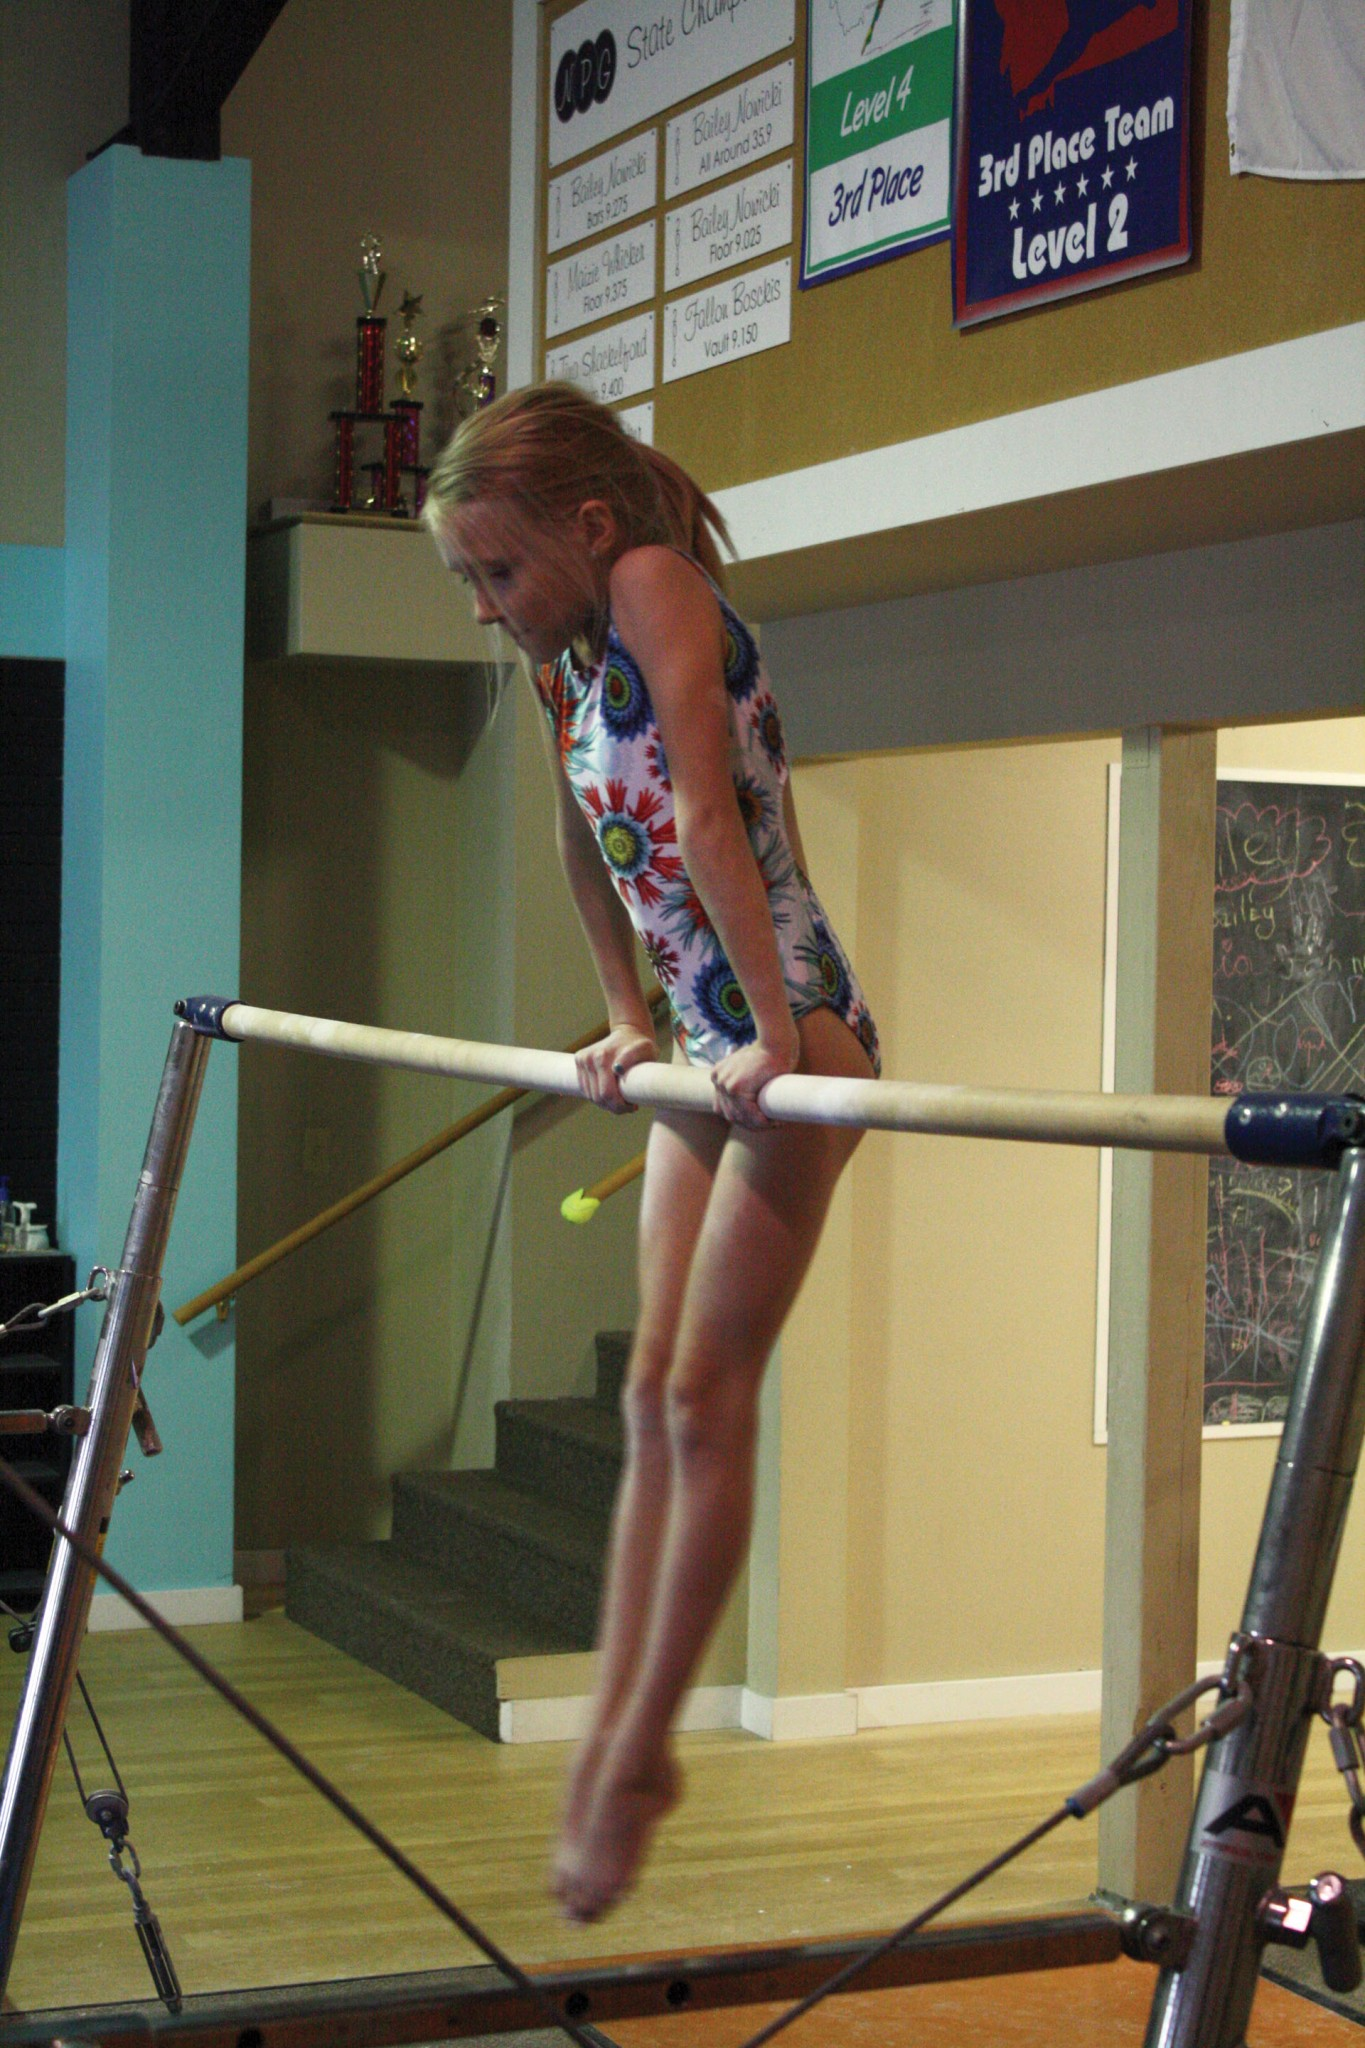 <strong>Gwendolyn Garvin practices the first part of her uneven bars routine during the regular team practice at Northern Pacific. The uneven bars is Garvin's favorite event, especially the dismount.</strong>